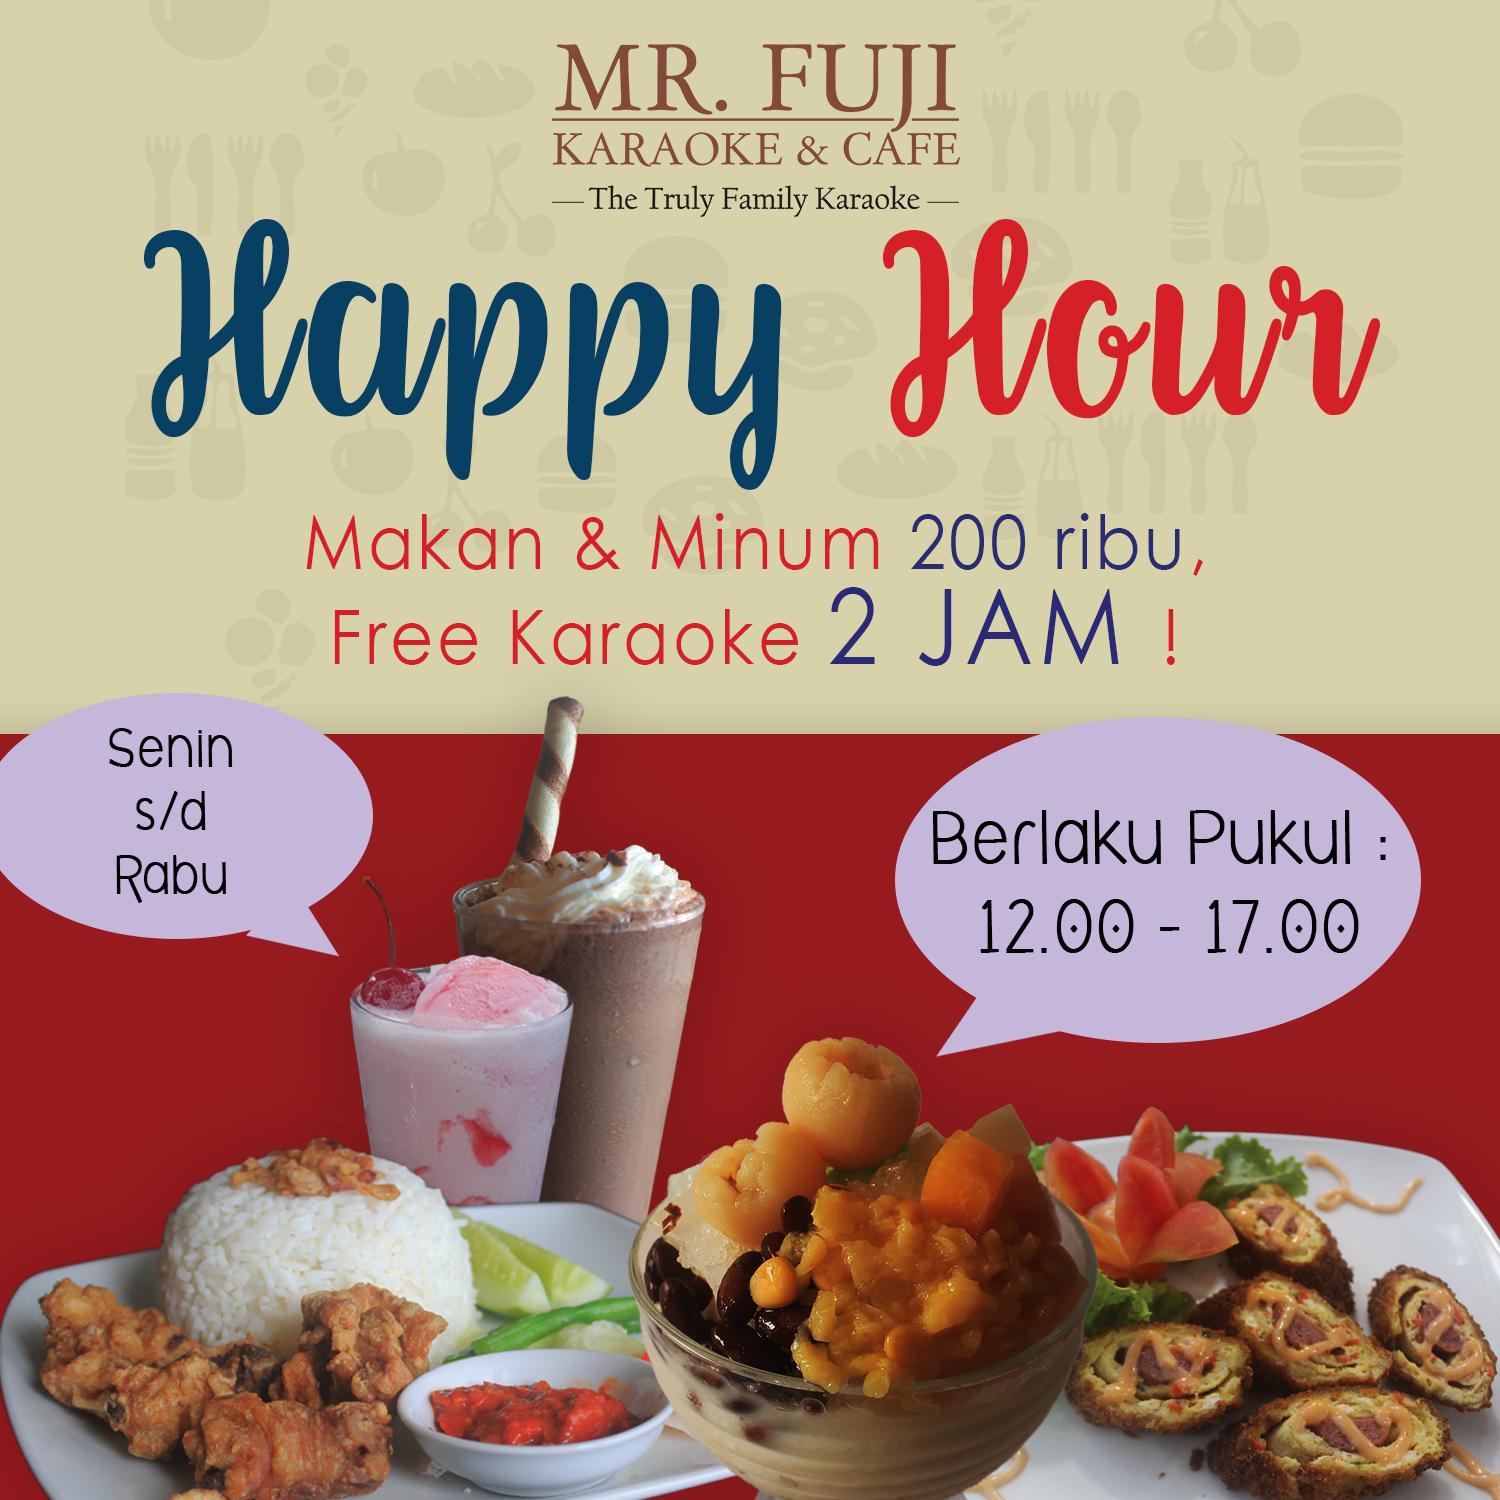 Promo Tempat Karaoke Keluarga MR Fuji Karaoke n Cafe Happy Hours